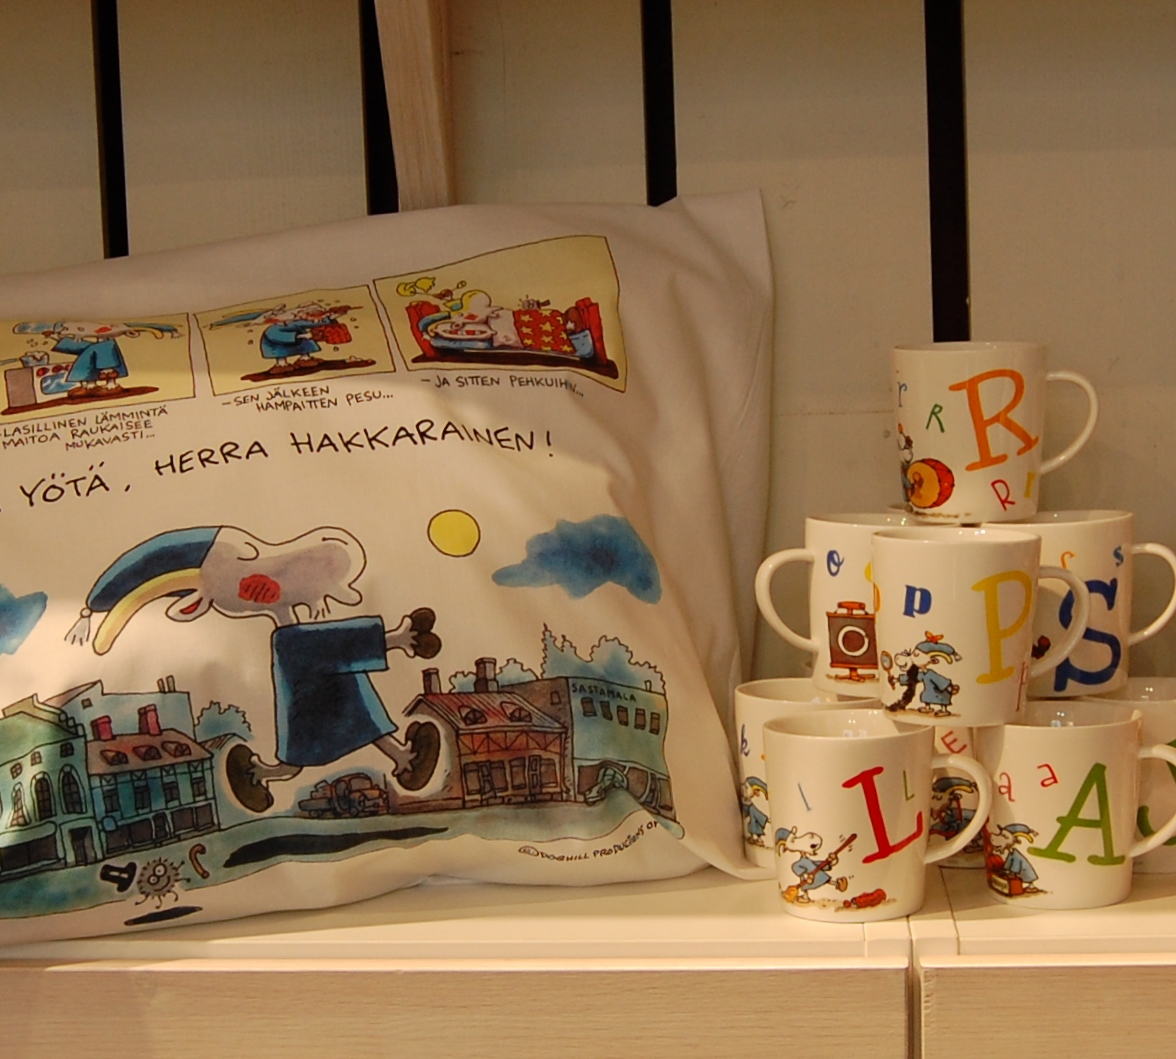 Lovely pillow case and mugs from the gift shop.